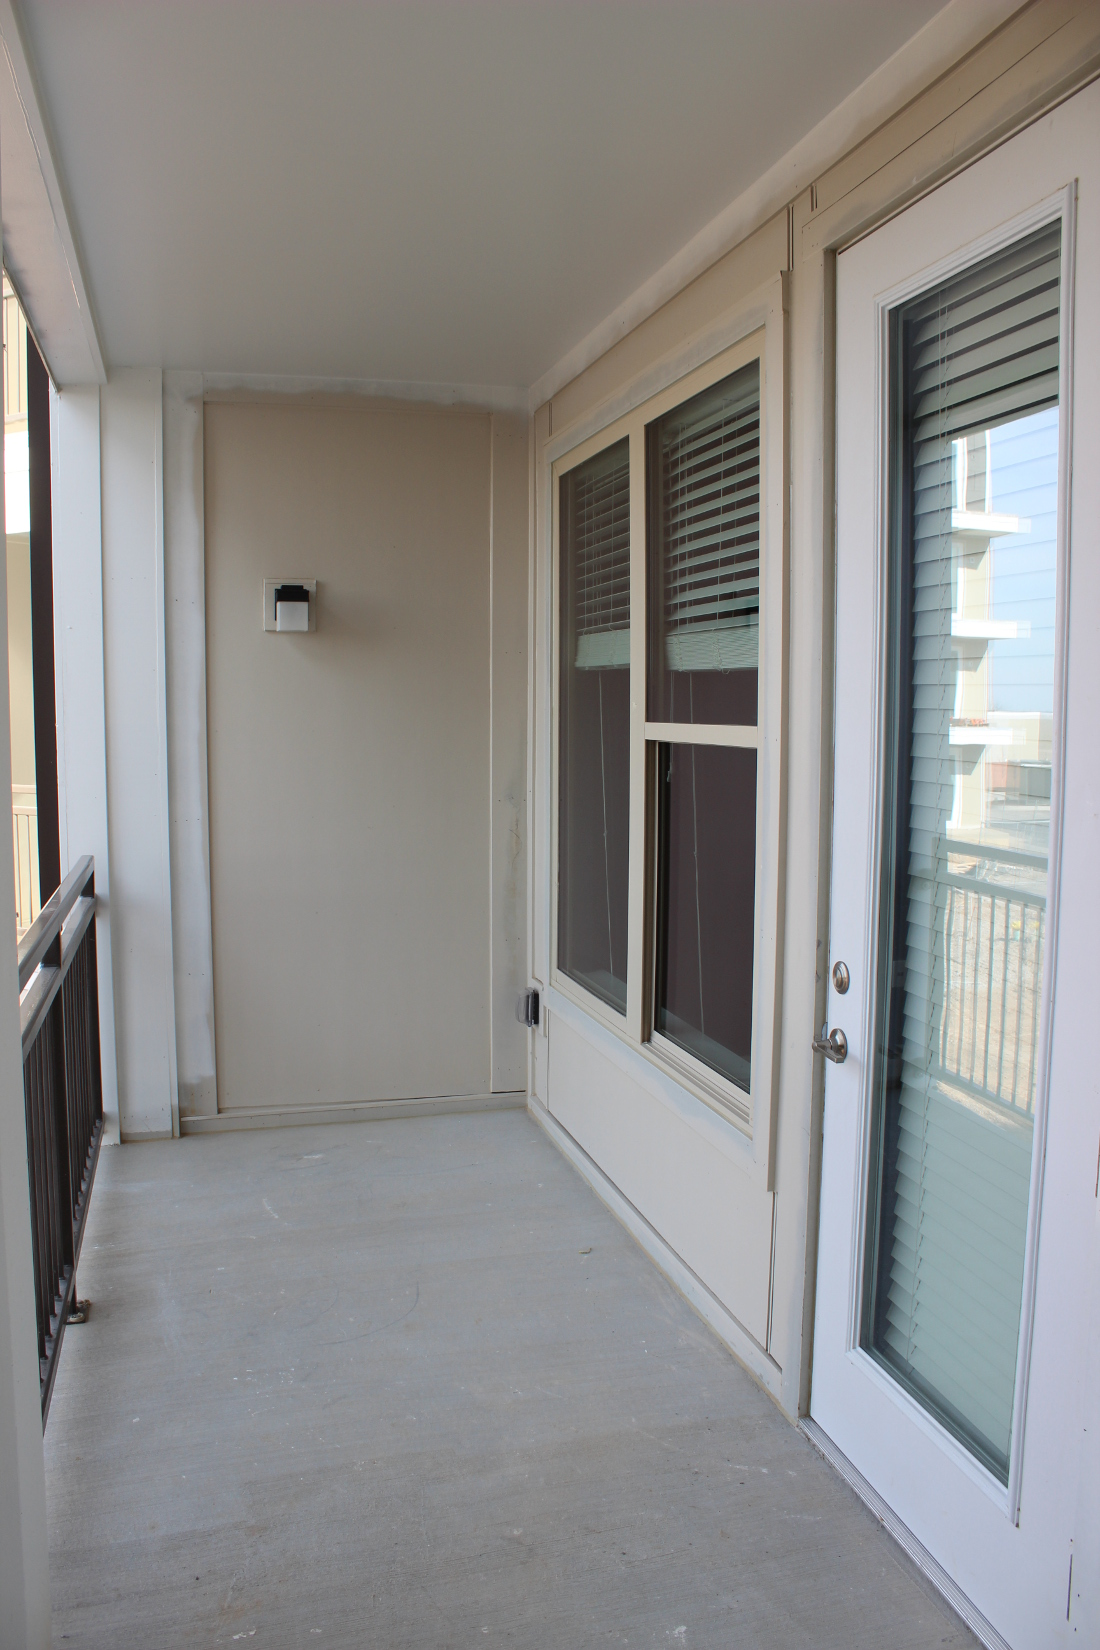 A3 Balcony  at the Vue at Creve Coeur Apartments in Creve Coeur, MO